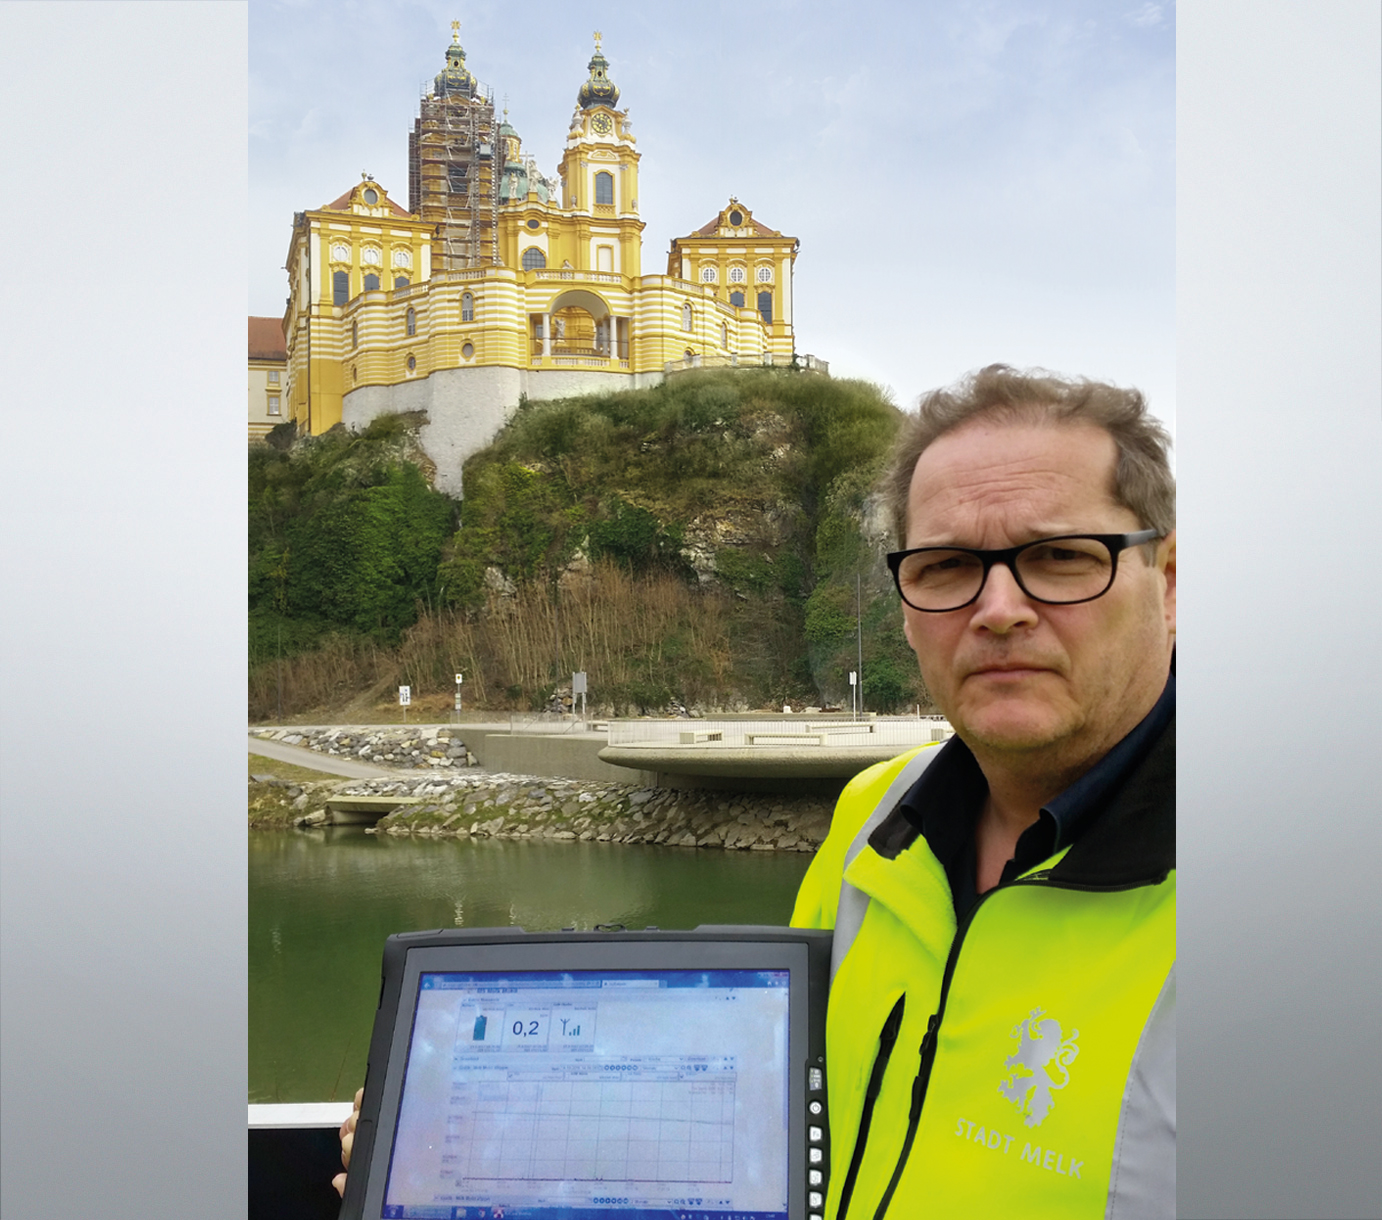 Treatment plant employee Marius Probst in front of Melk Abbey